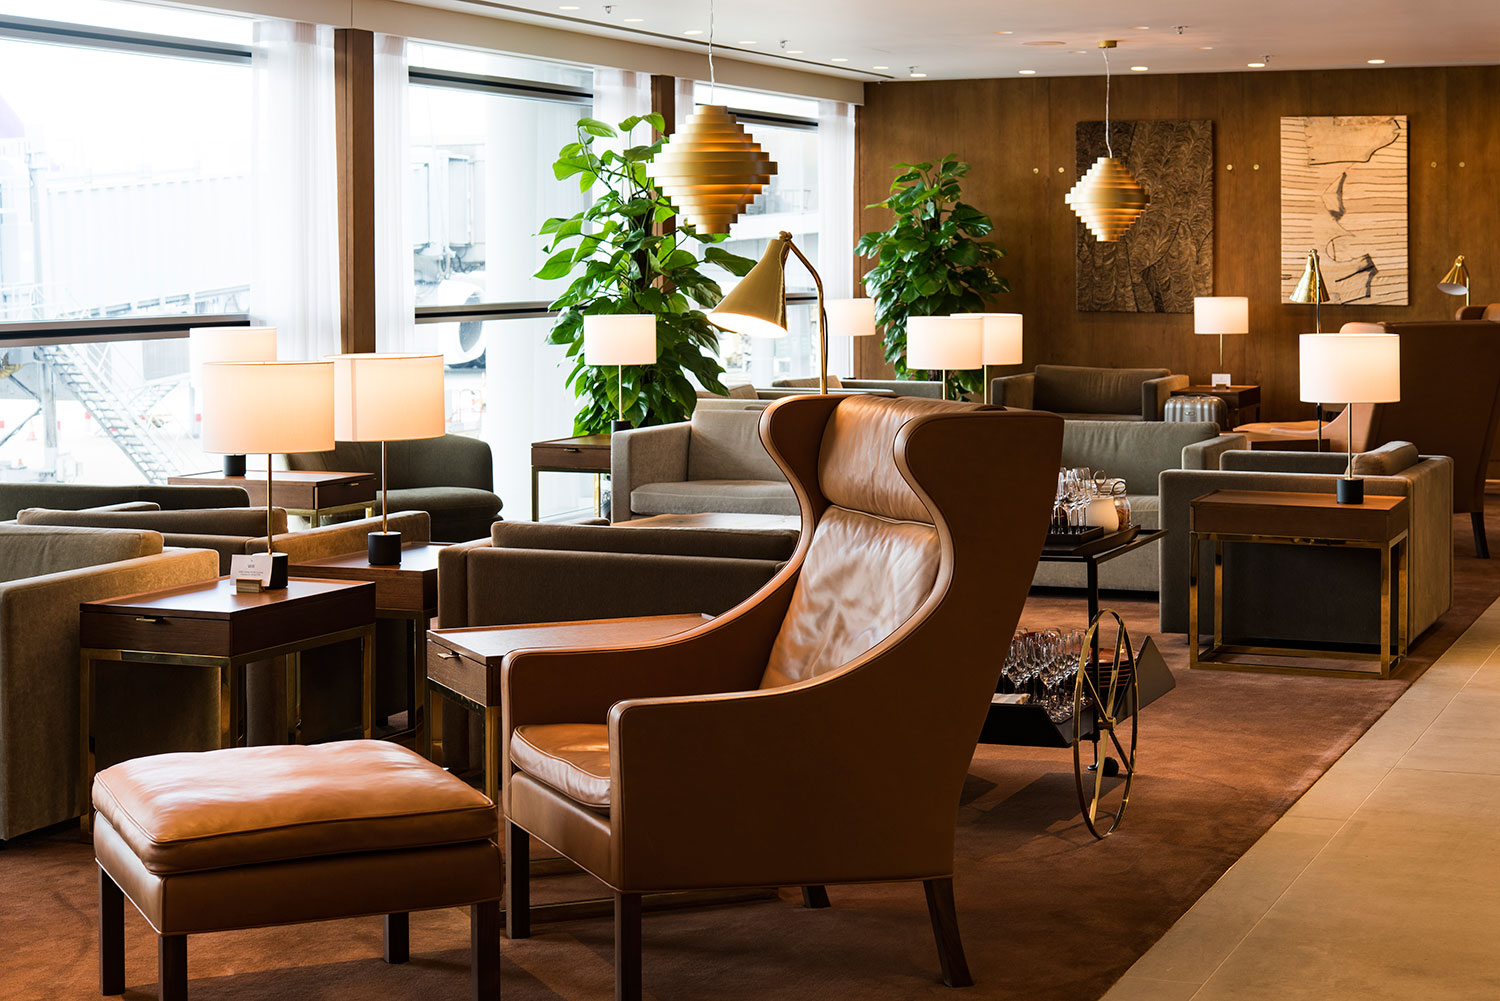 Pier First Class lounge for Cathay Pacific